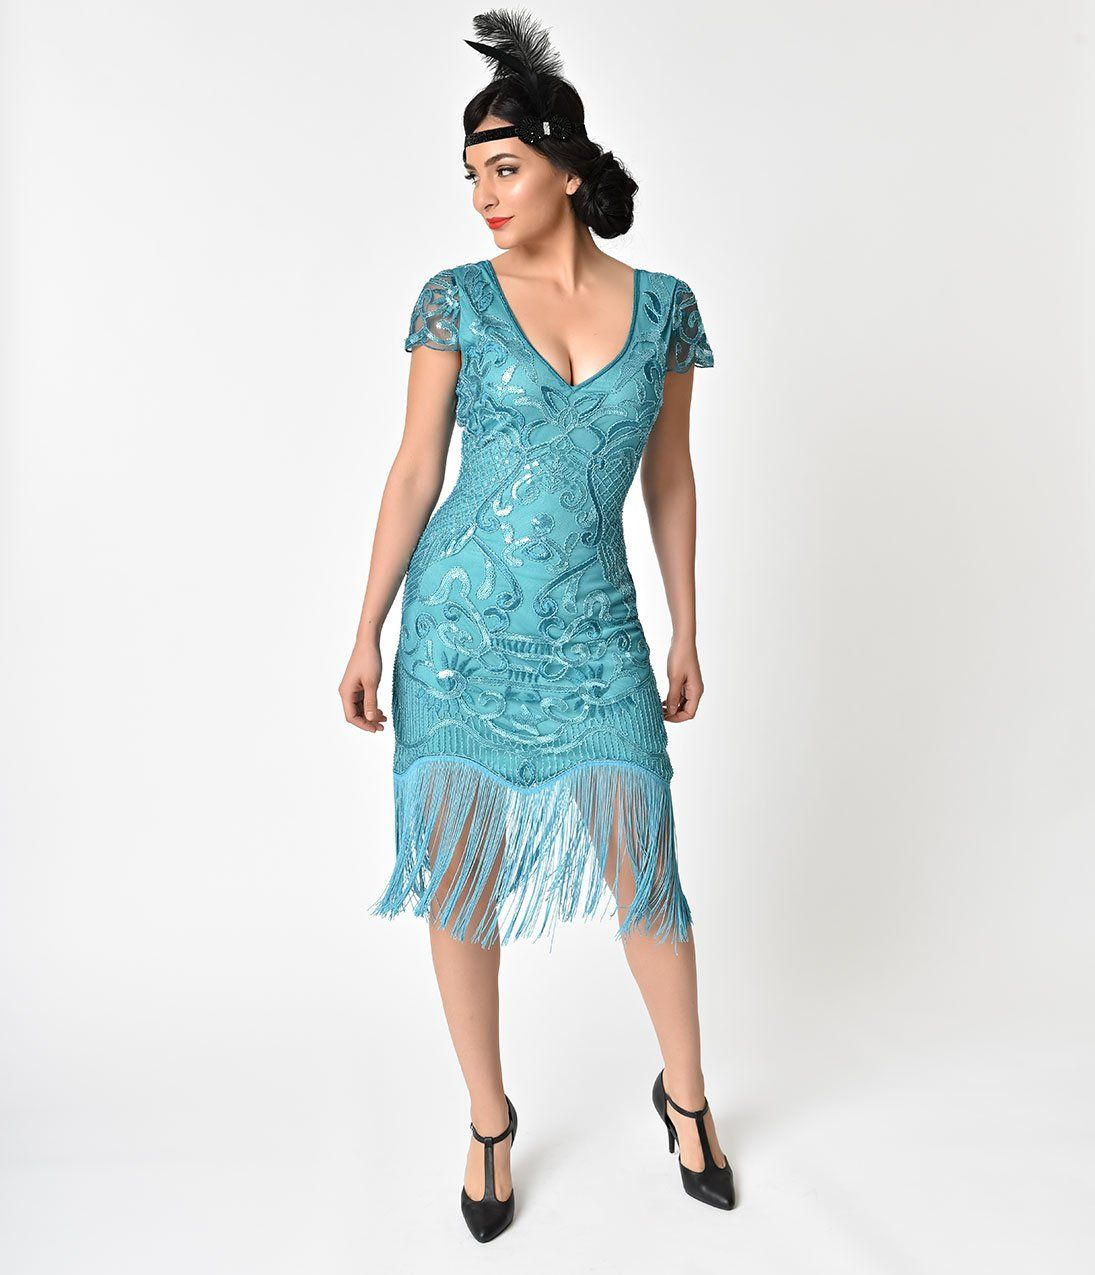 Great Gatsby Dress – Great Gatsby Dresses for Sale 6S Style